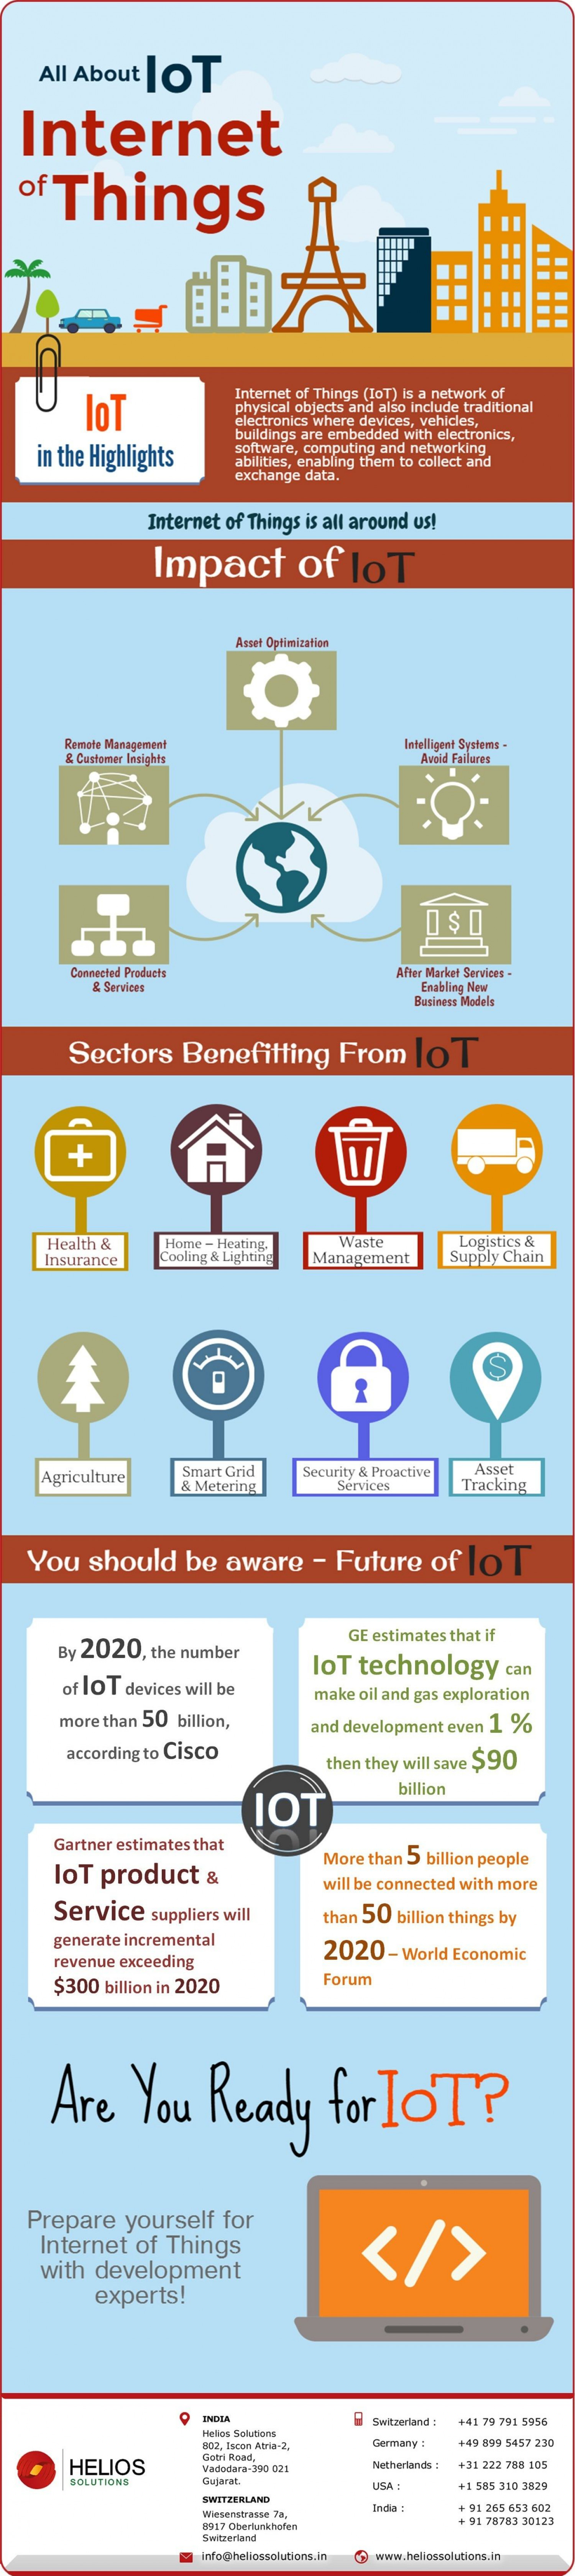 All About IoT – Internet of Things Infographic